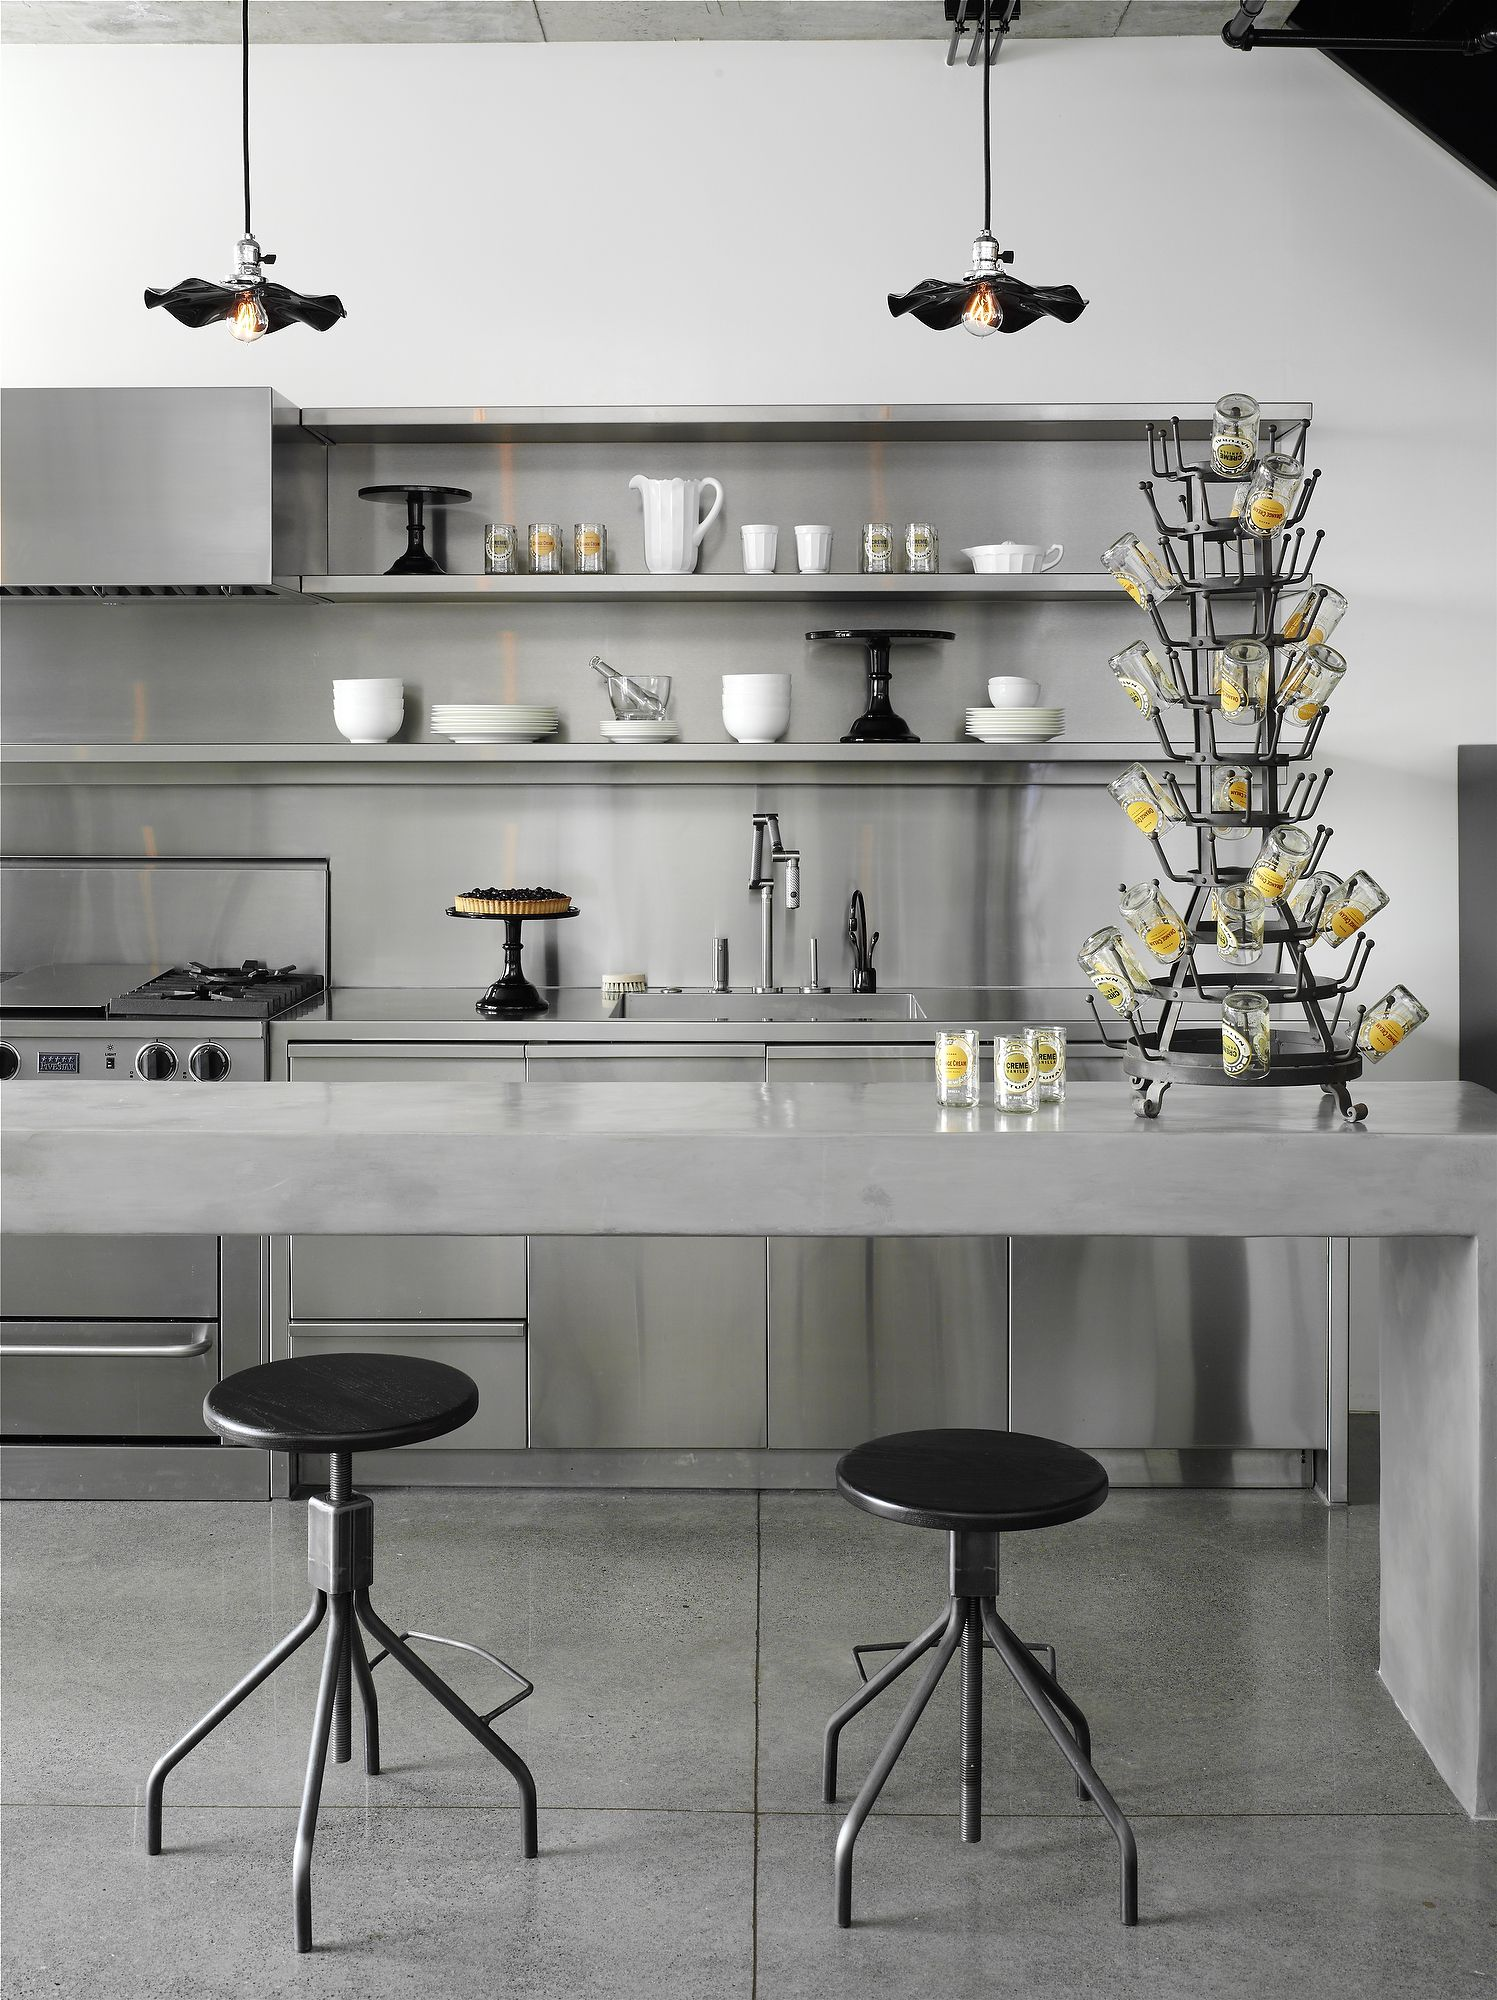 beton k che kitchen pinterest k che k che einrichten und traumk chen. Black Bedroom Furniture Sets. Home Design Ideas